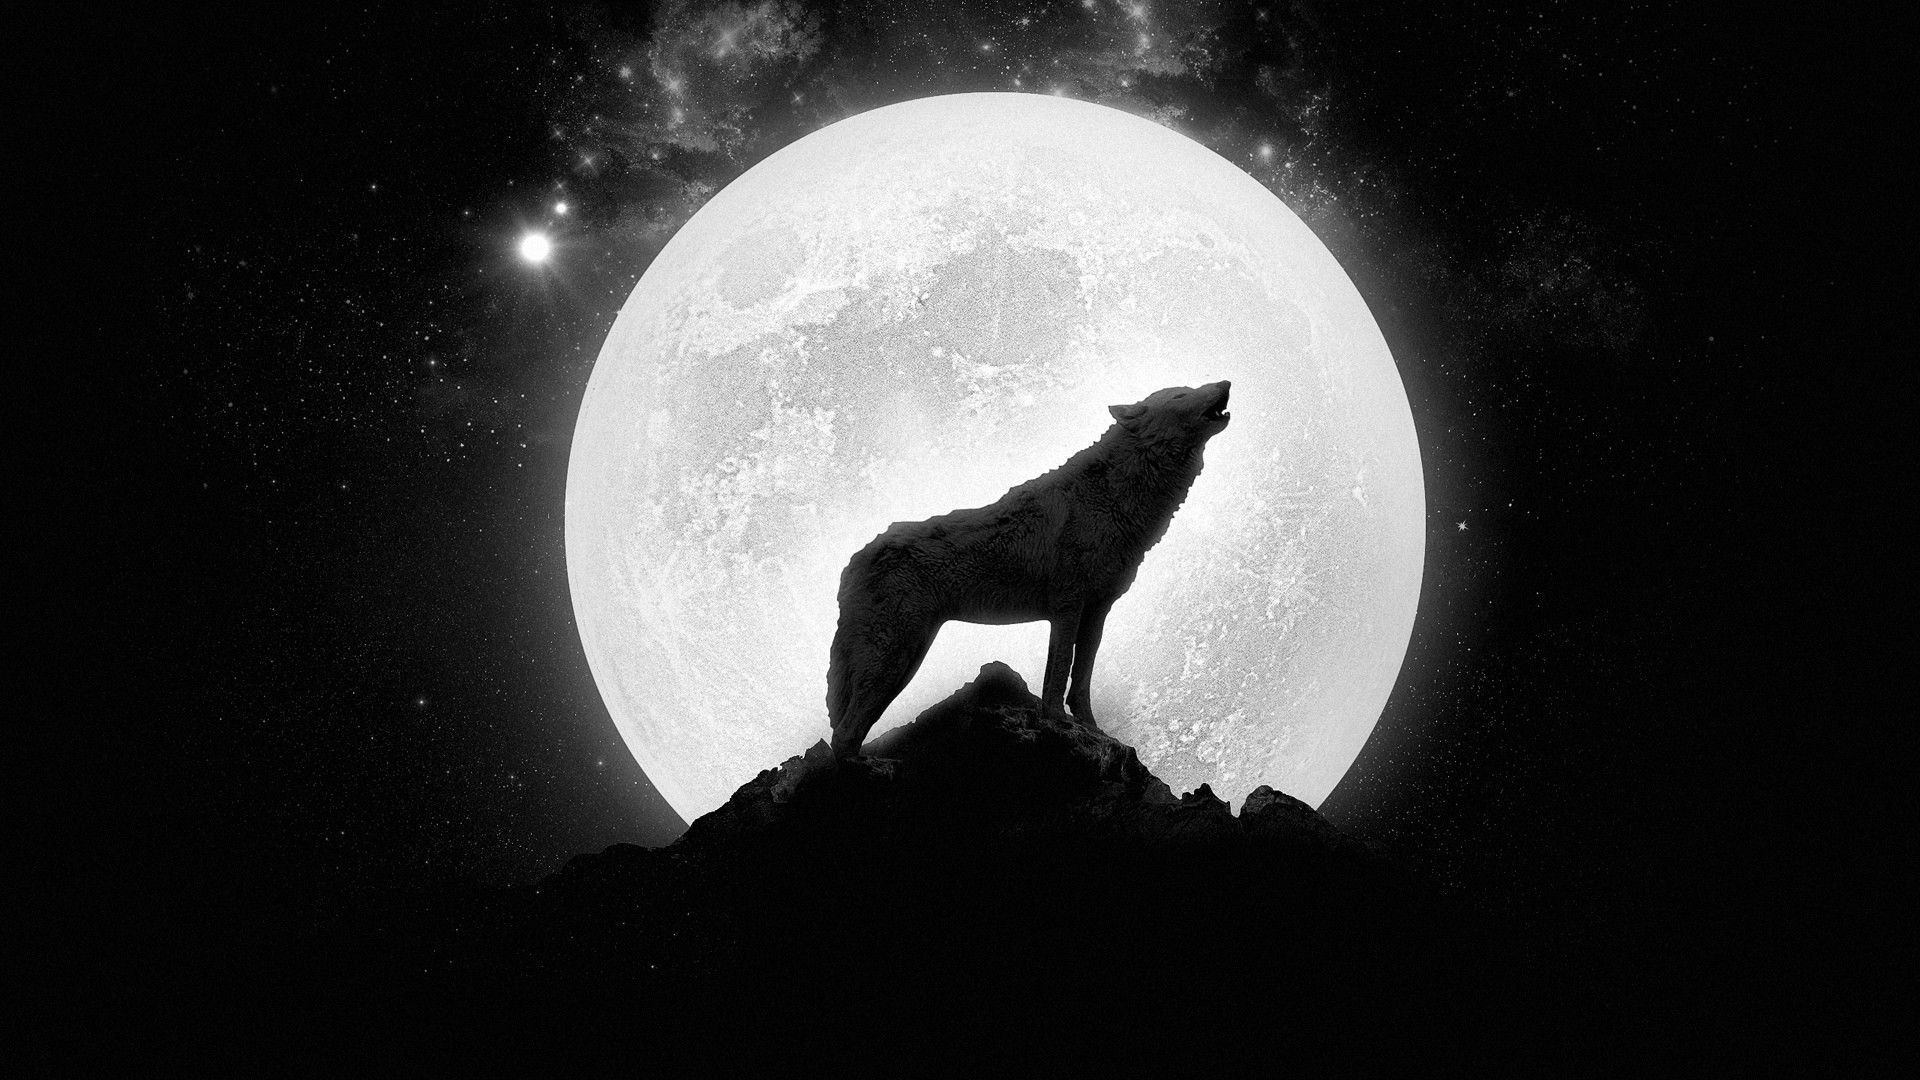 Hd wolf wallpapers 1080p 71 images - Wolf howling hd ...